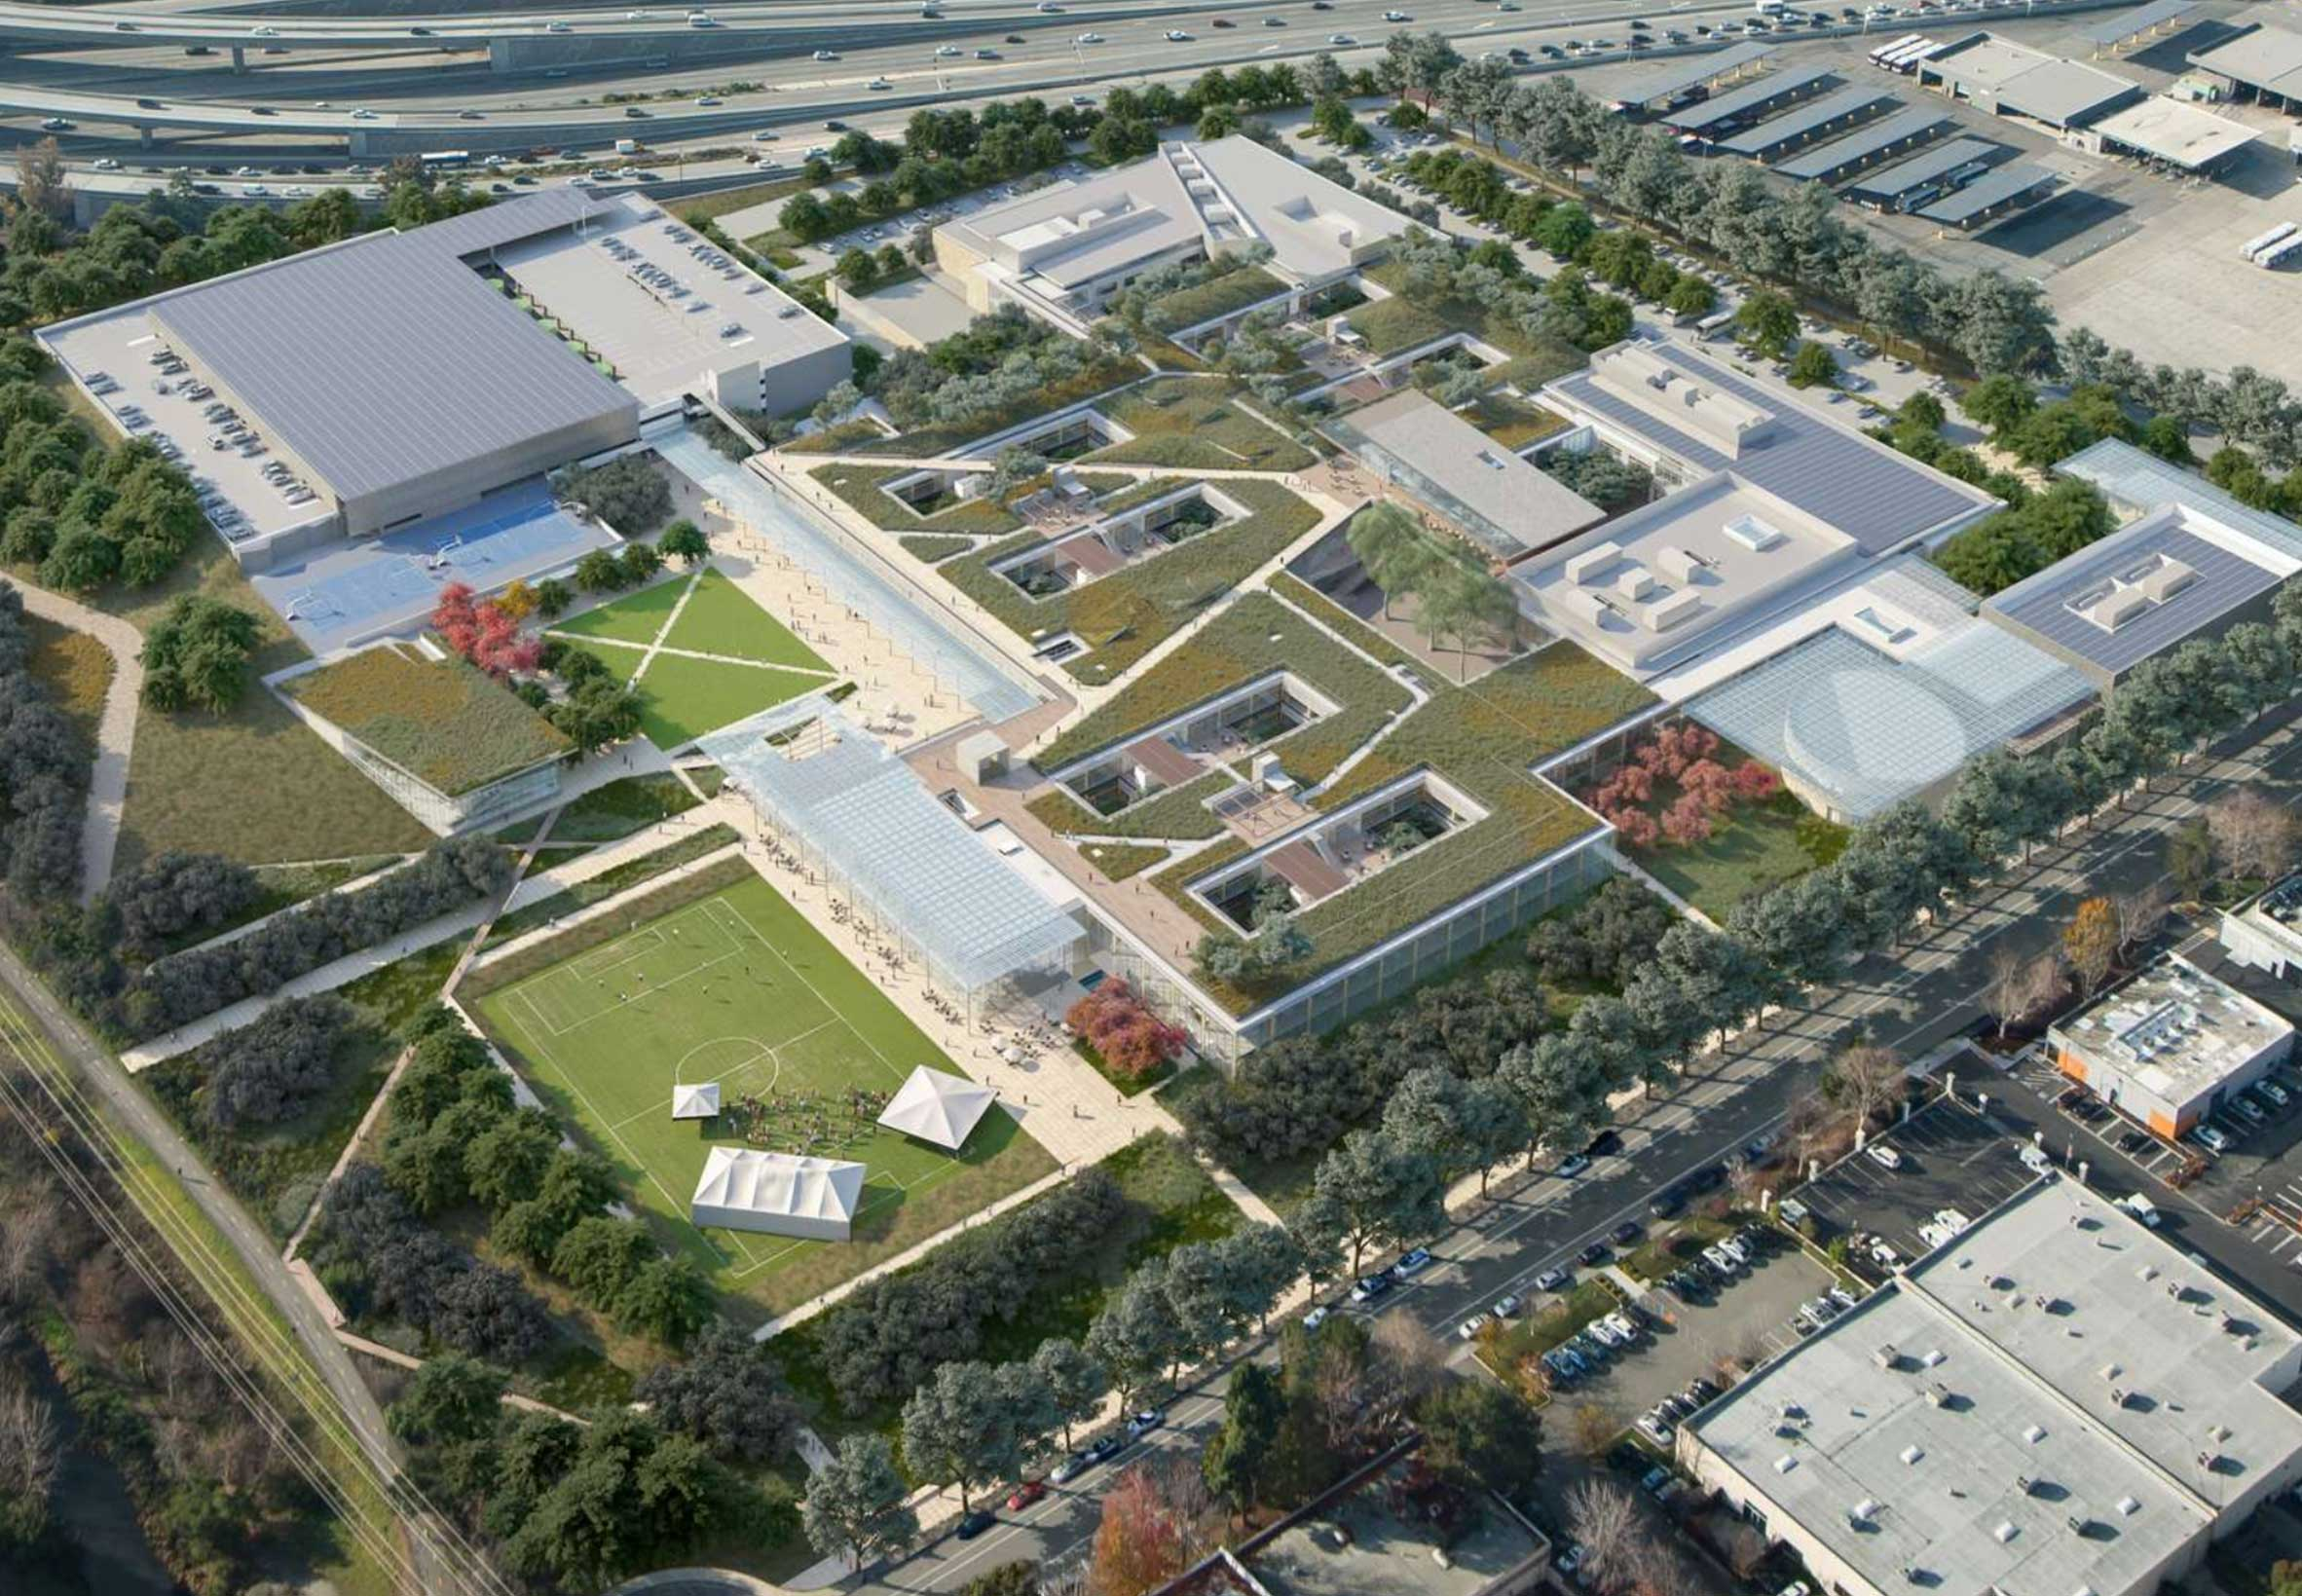 Aerial rendering of Mountain View corporate campus